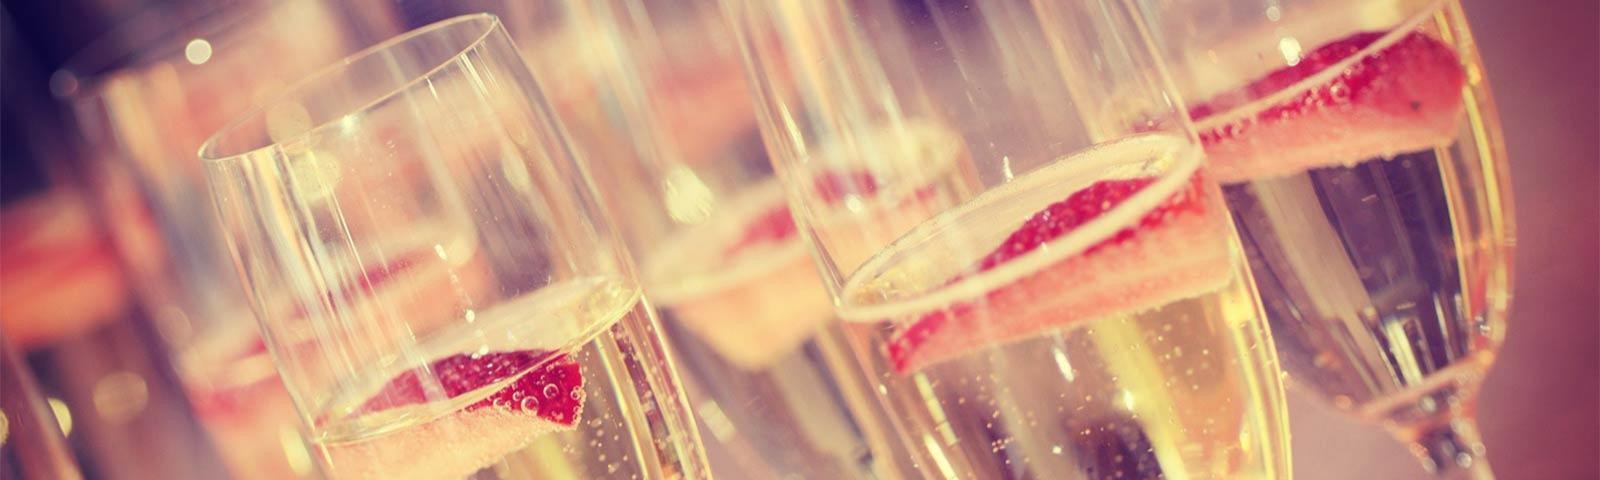 Close up of champagne glasses.